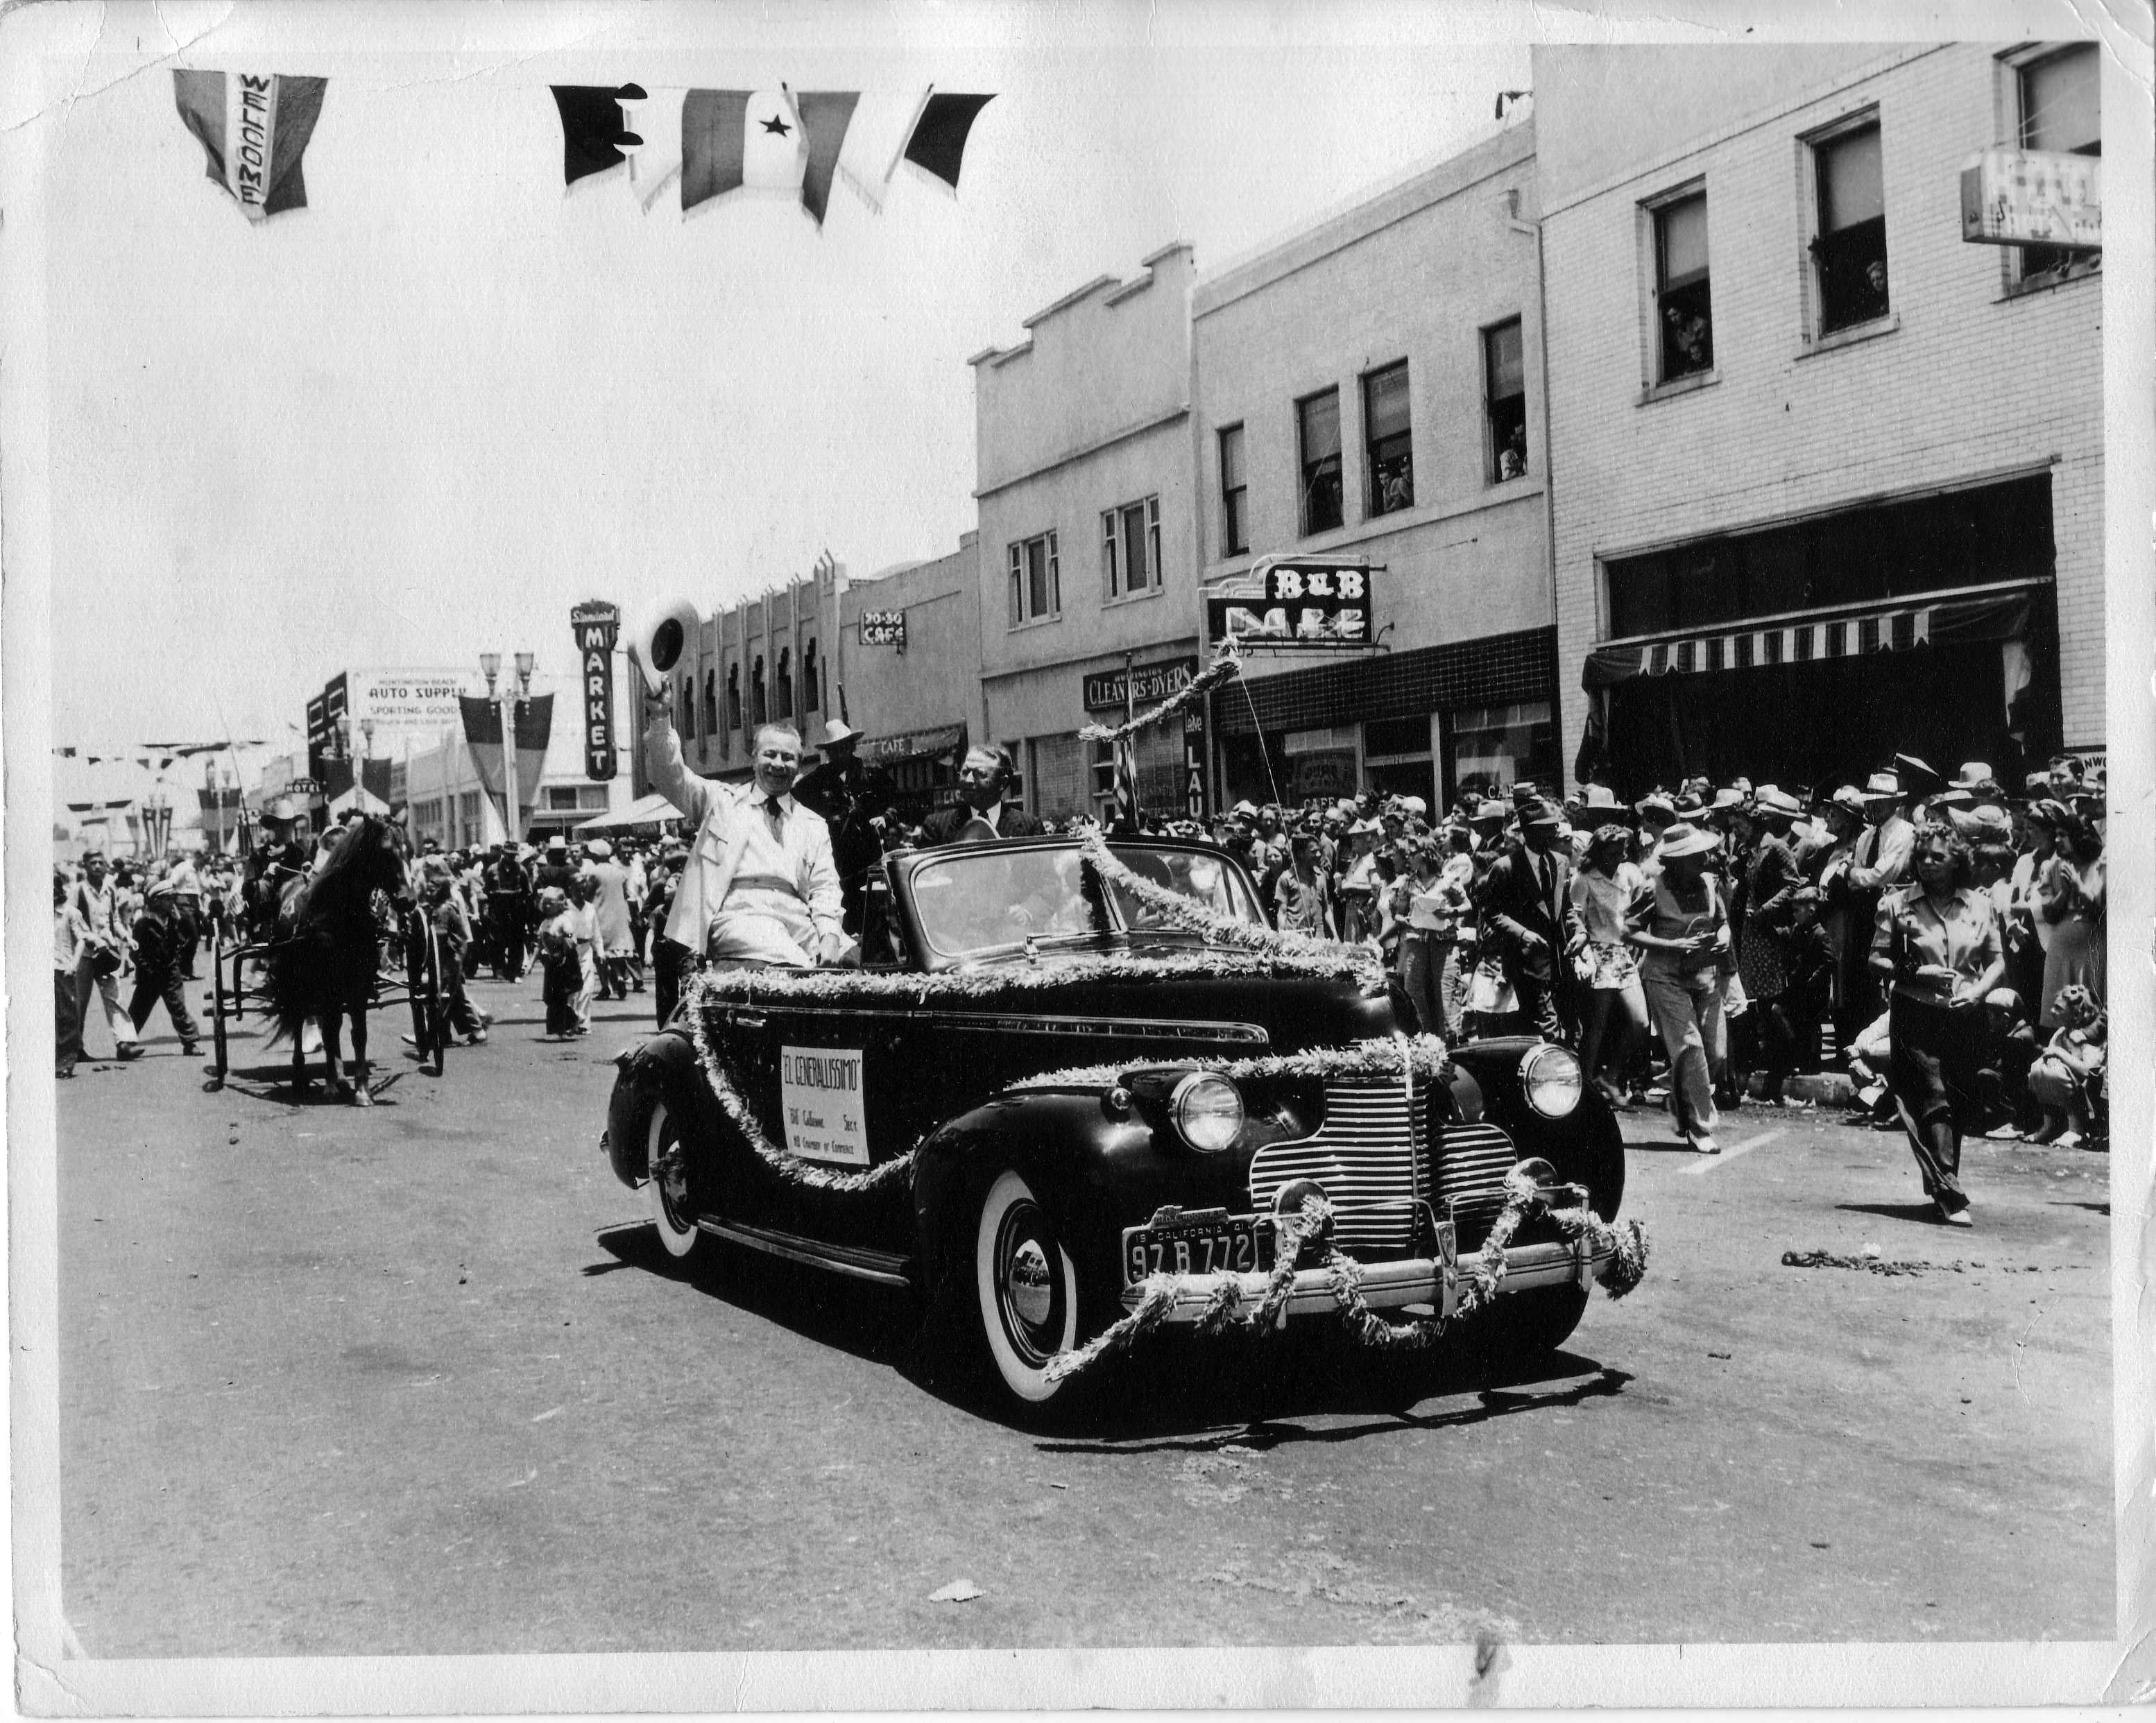 Huntington Beach Parade Historical 1942